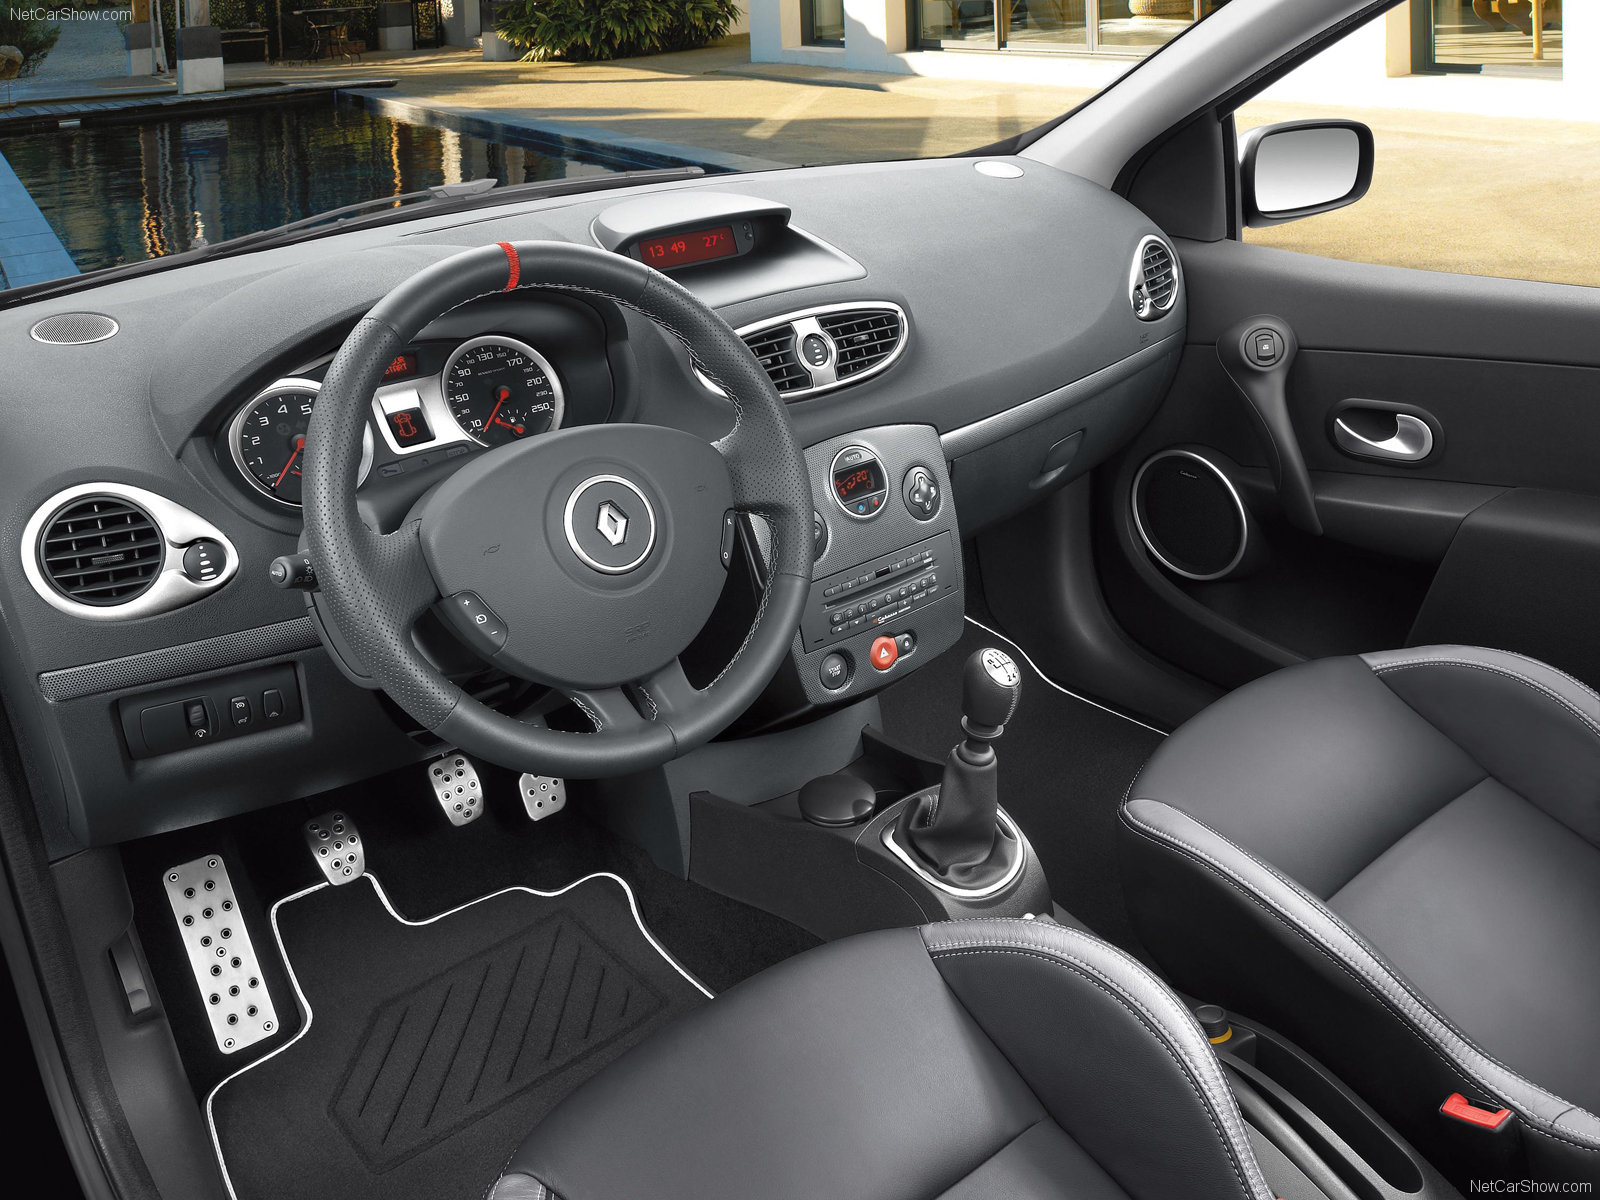 My perfect Renault Clio. 3DTuning - probably the best car configurator!